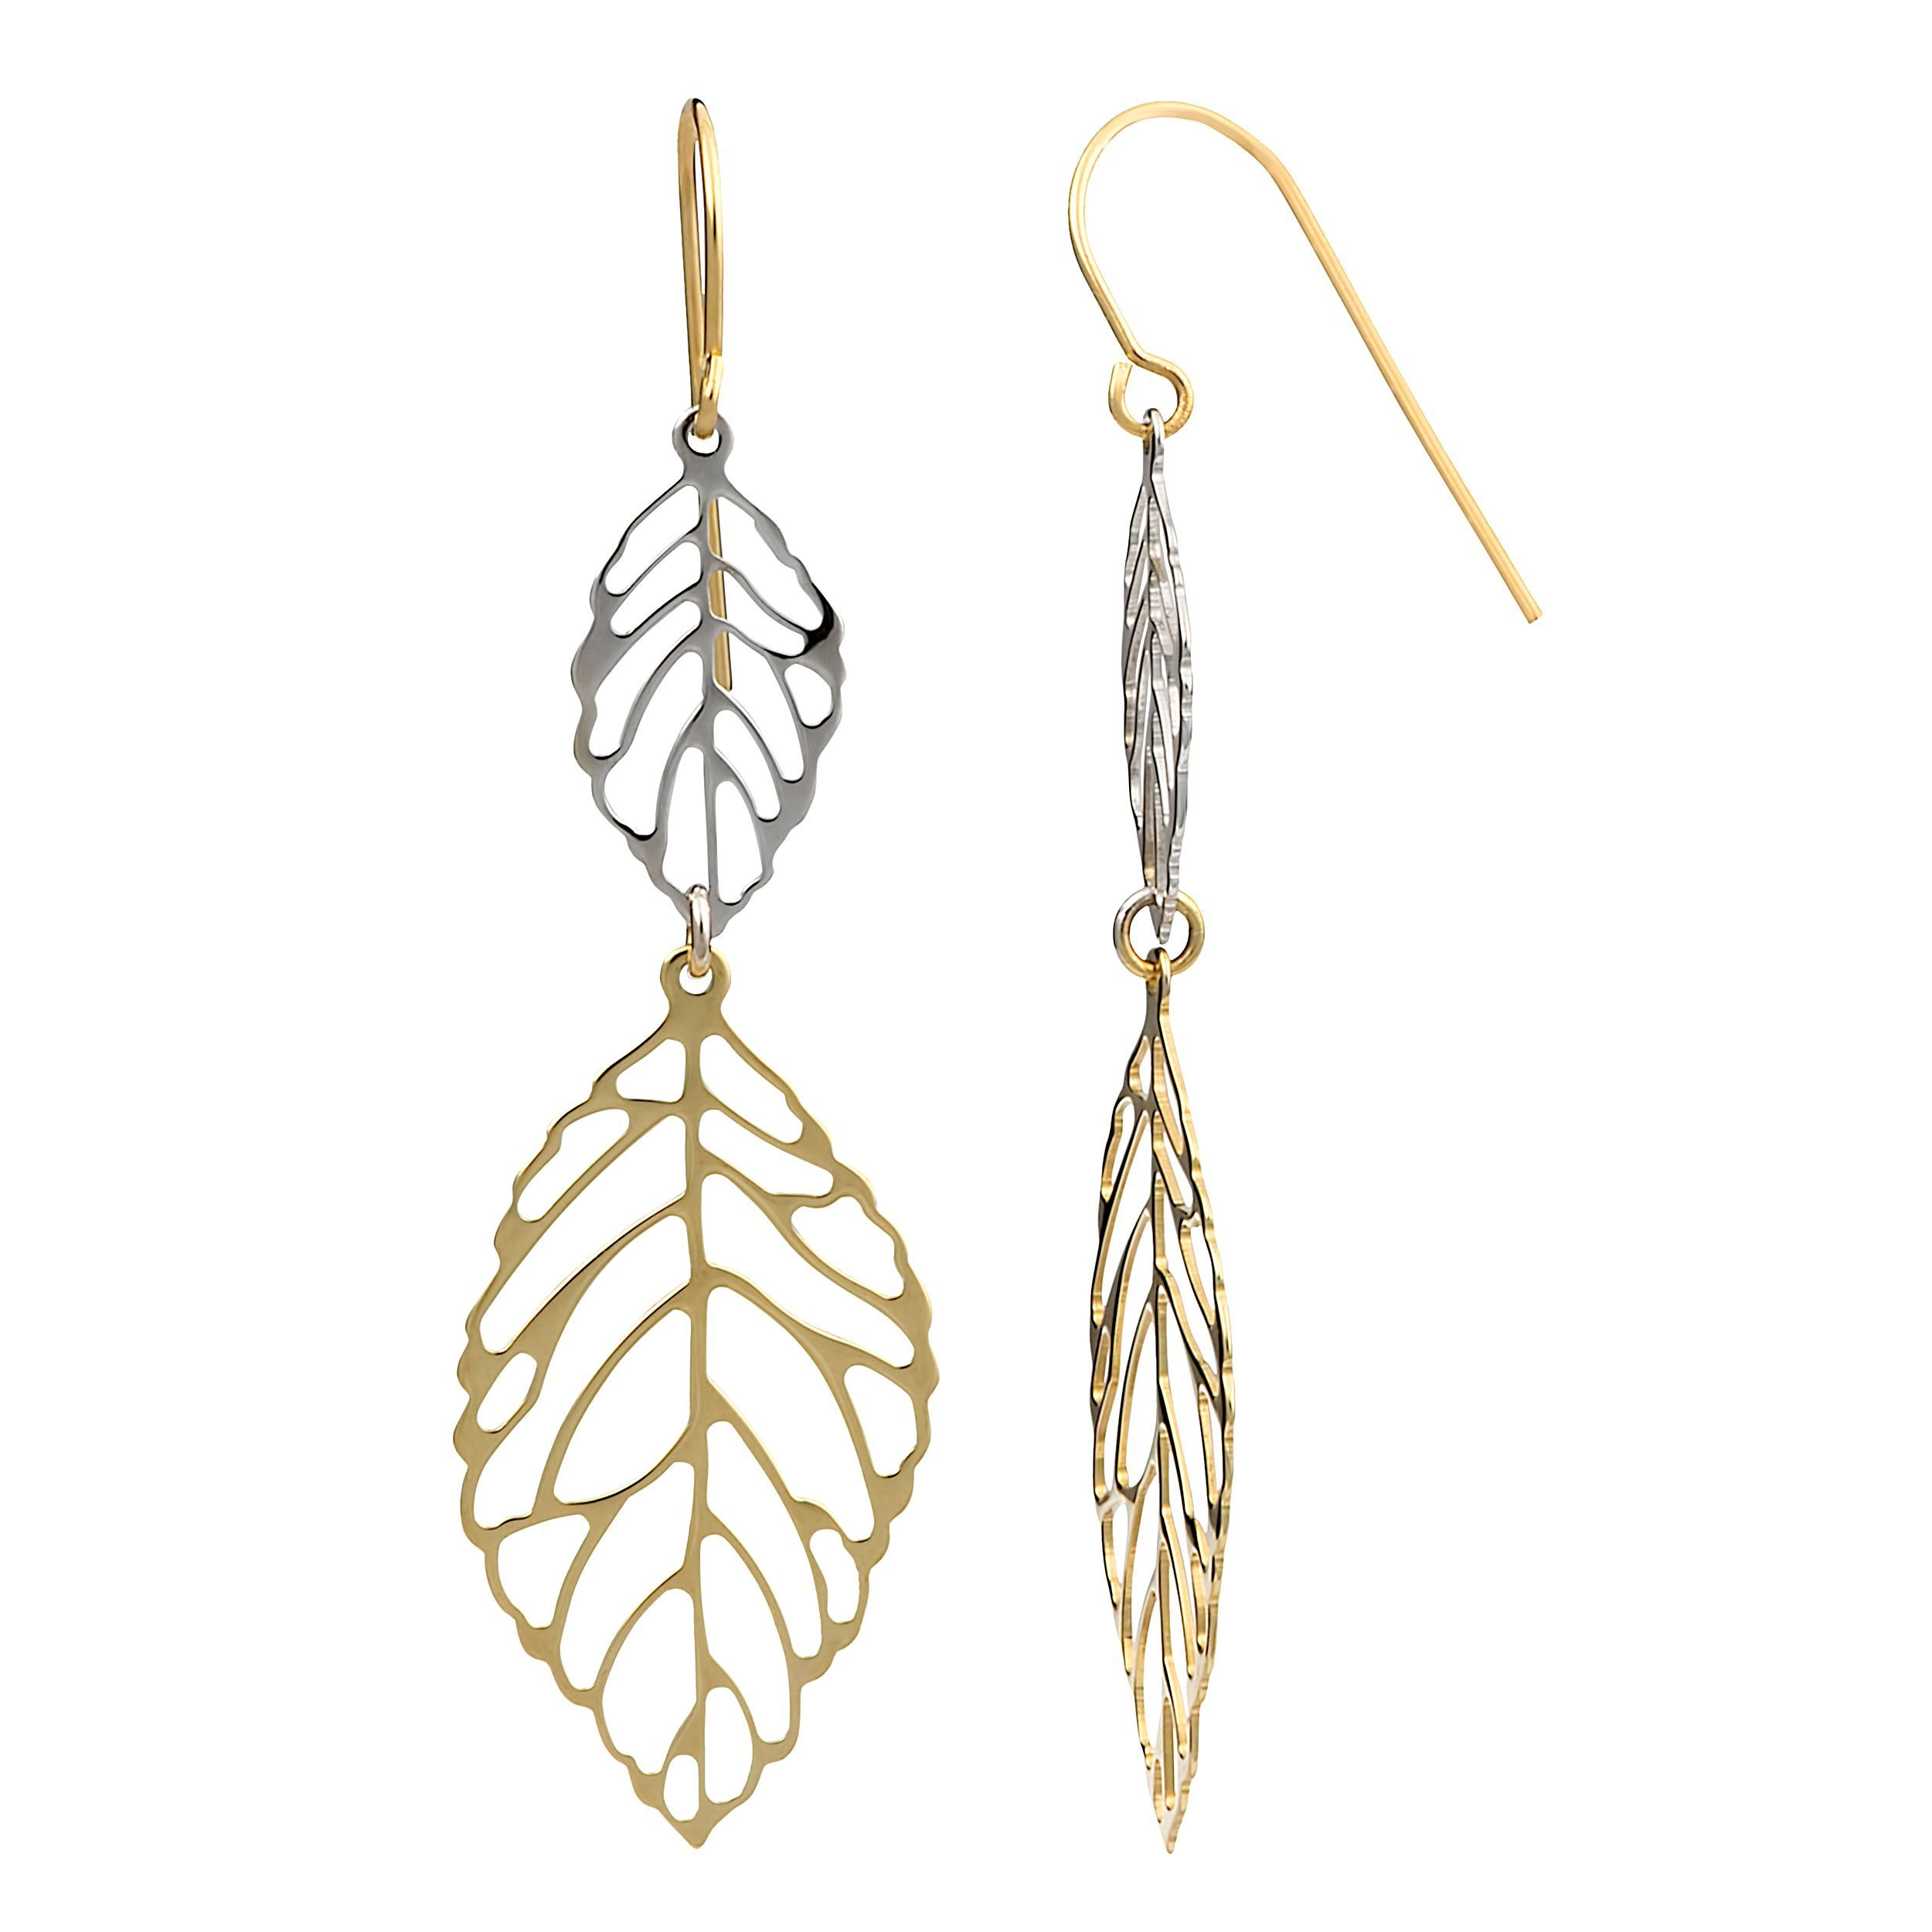 Online Shopping Bedding Furniture Electronics Jewelry Clothing More Drop Earrings Gold Earrings Dangle Gold Leaf Earrings